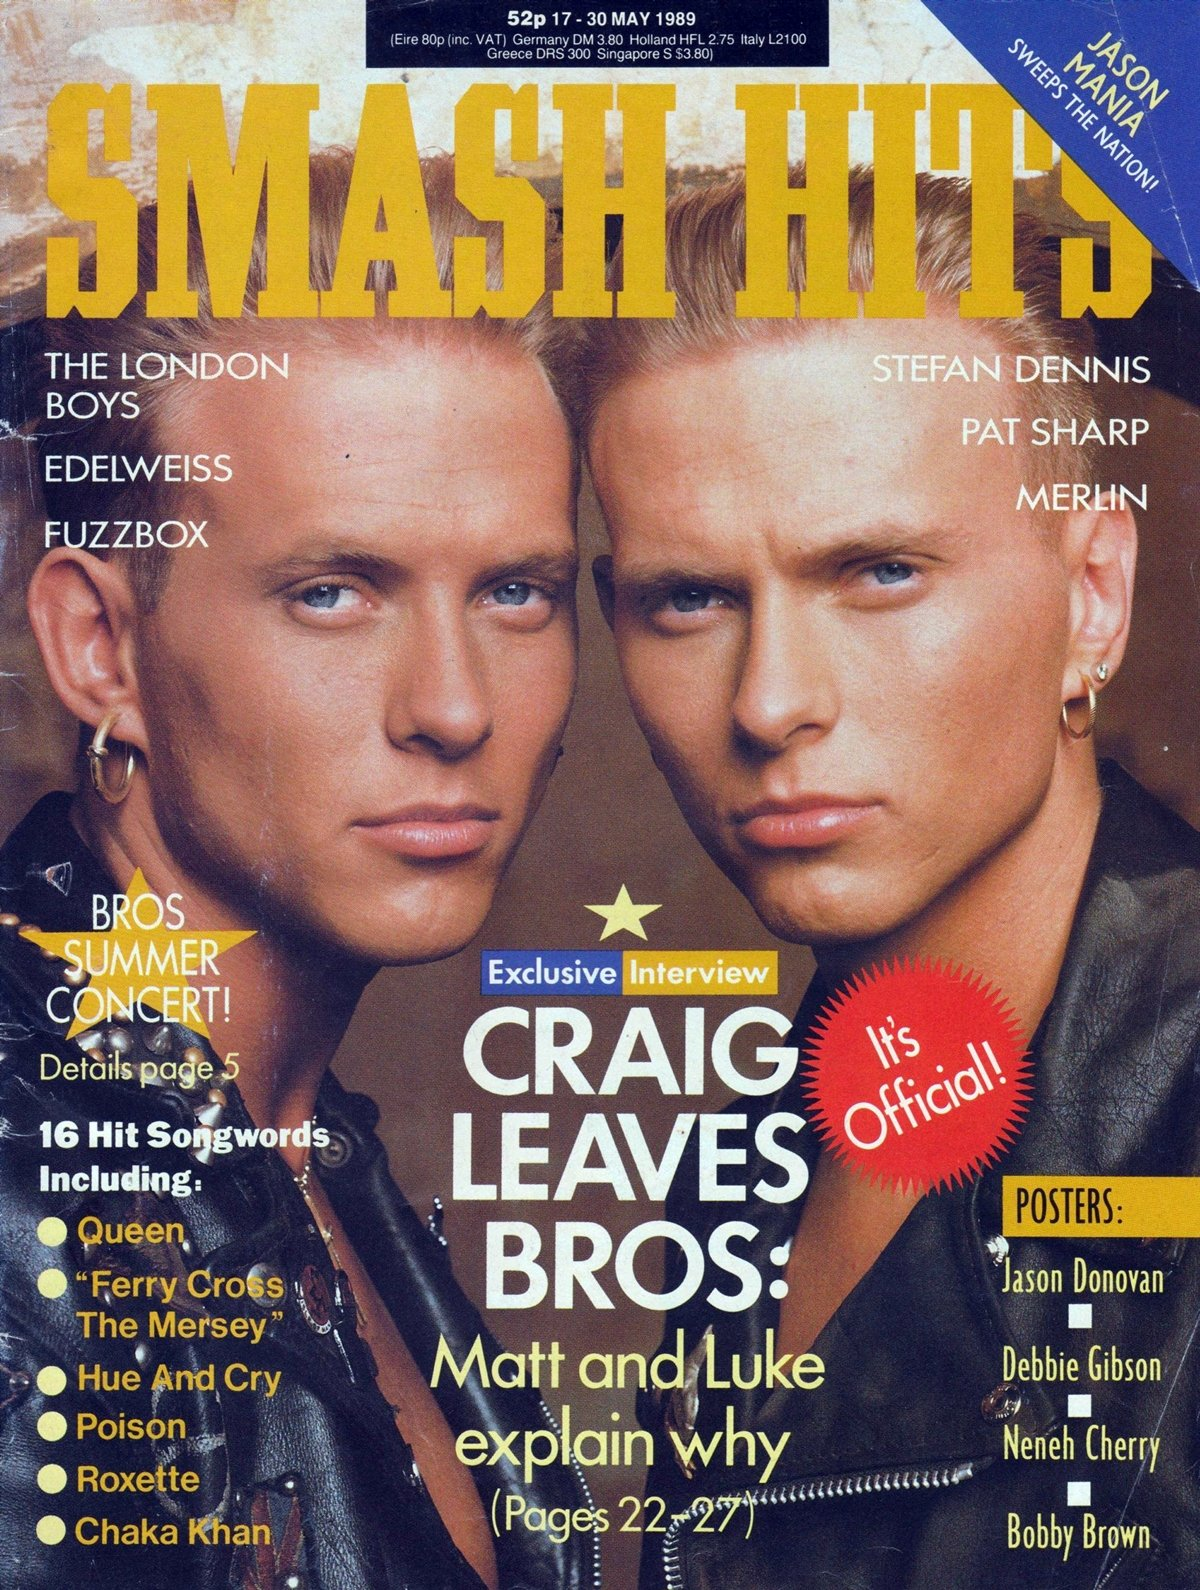 1 2 16 Smash Hits Covers That Will Take You Right Back To Your Youth